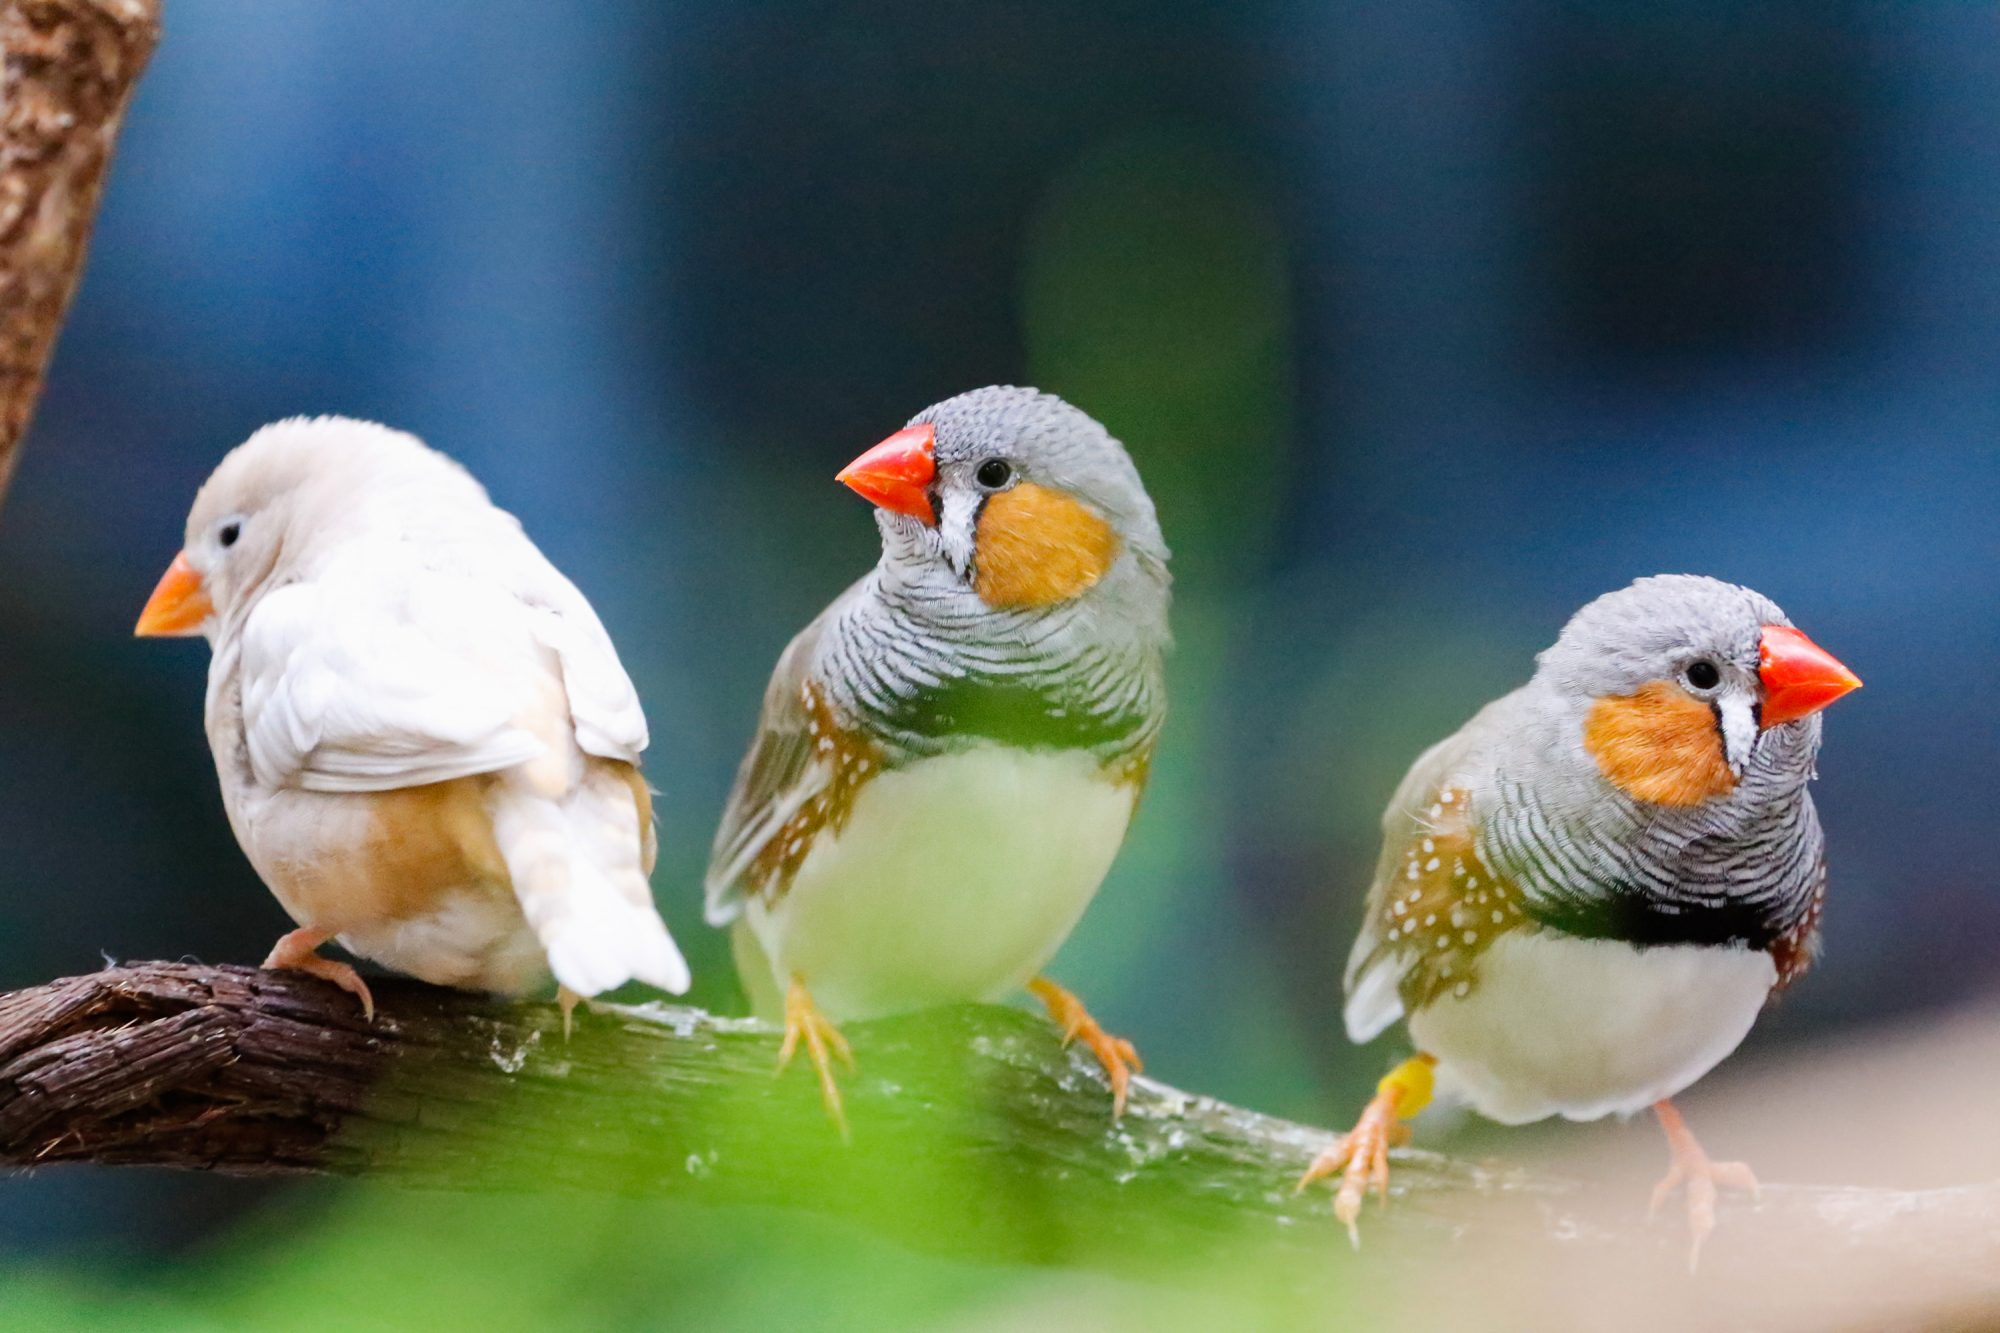 Songbirds Aren't Singing the Same Tune: Researchers Suggest Each Bird's Song Is Determined by Genetics